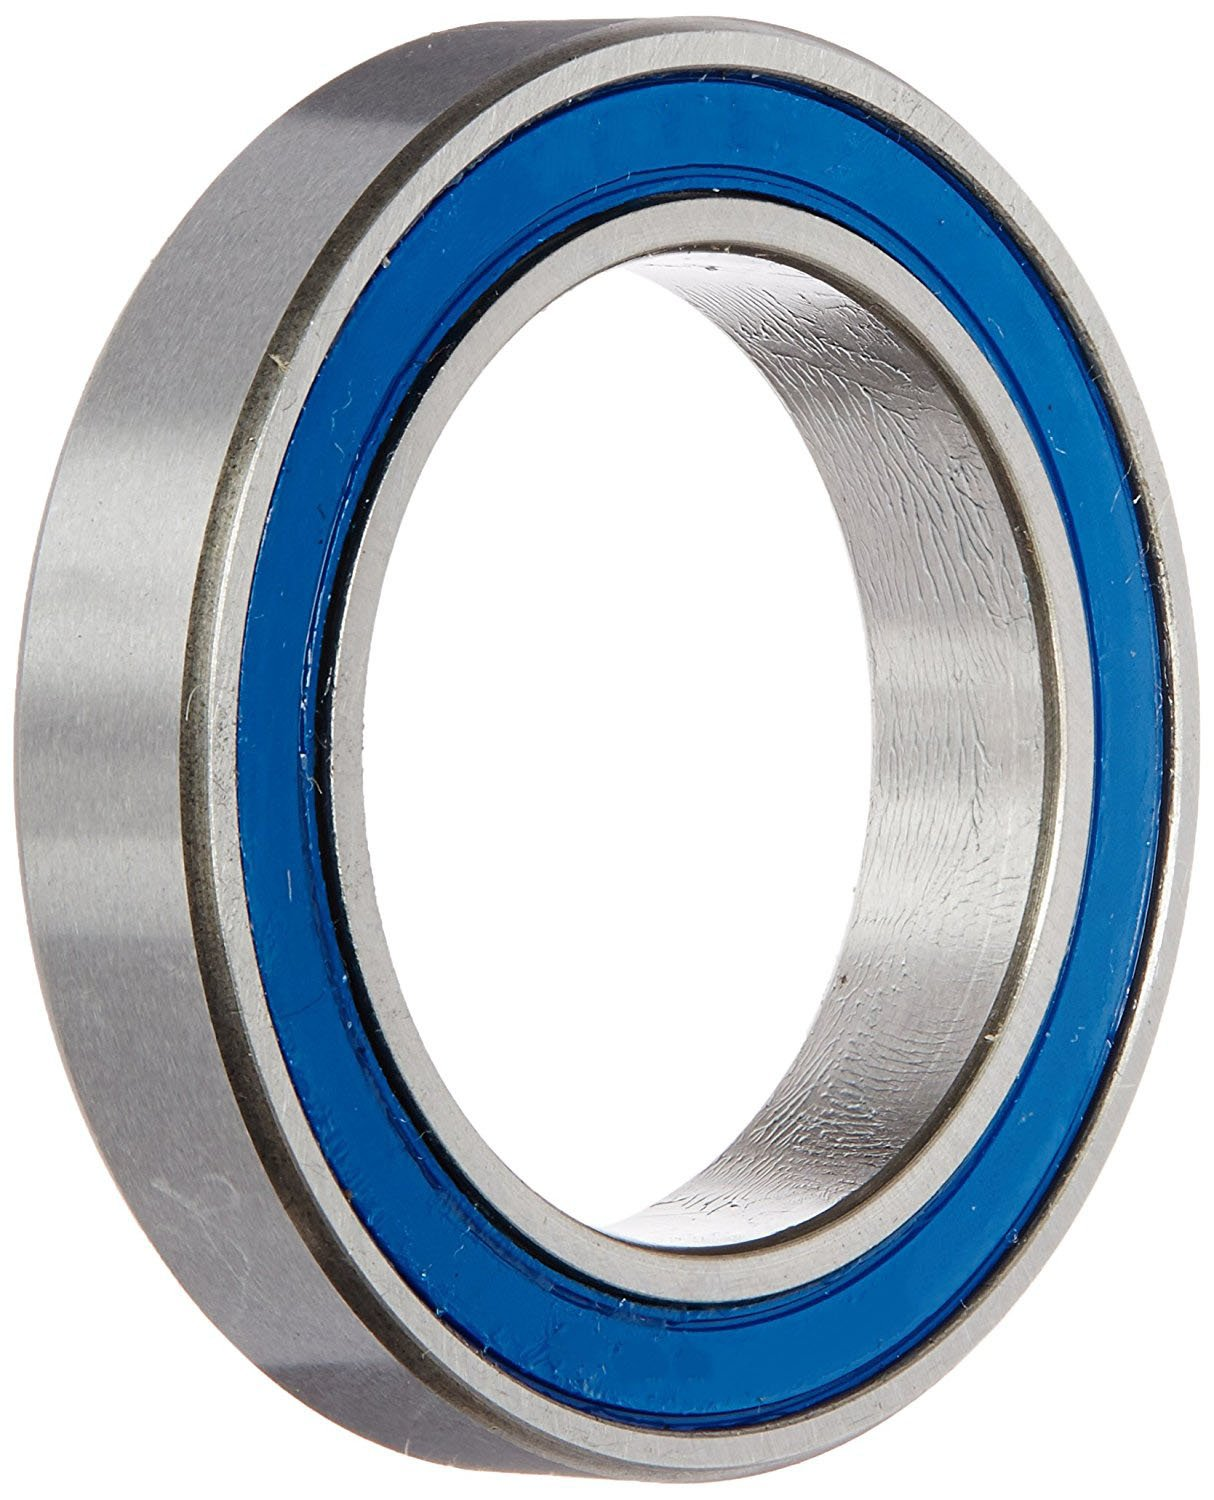 6804 Ceramic Bearing 20x32x7mm Ceramic Ball Bearing